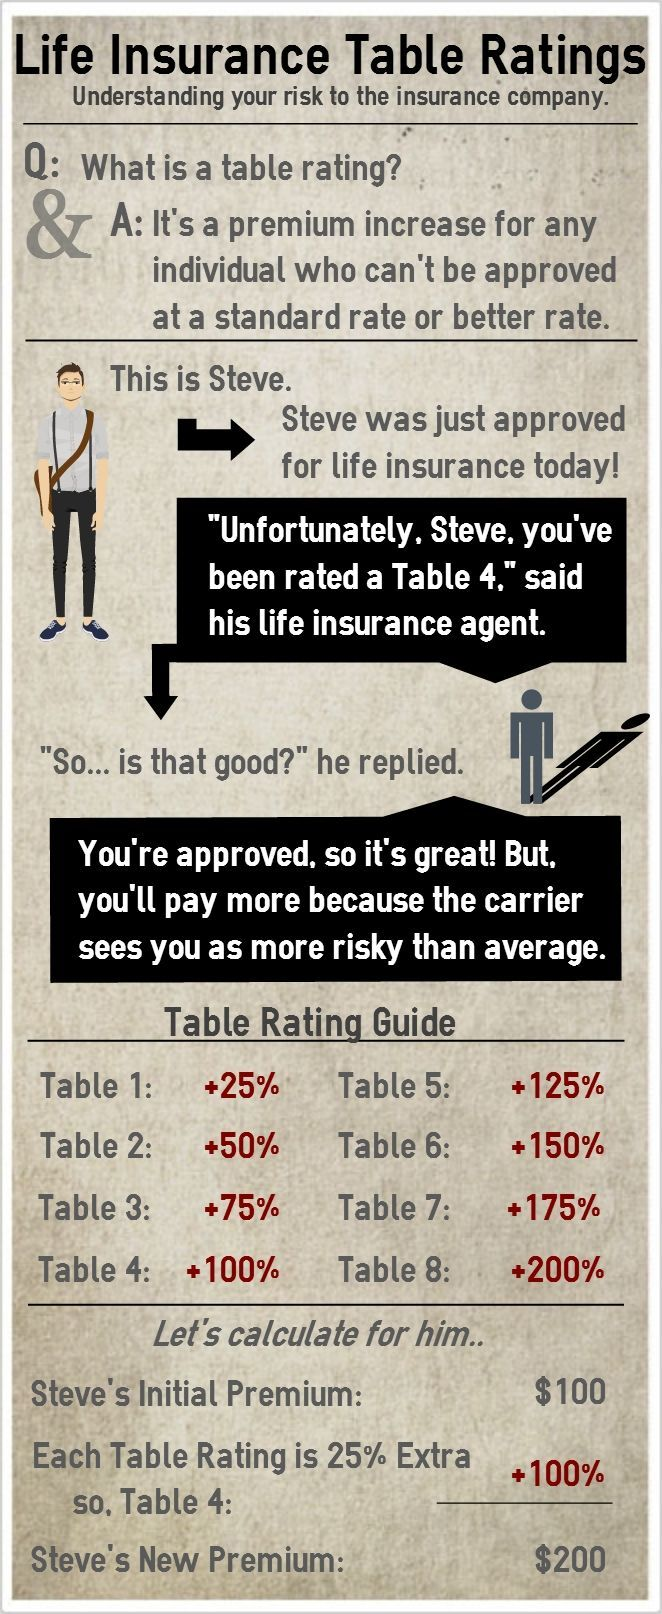 Life Insurance Table Ratings Infographic Waterway Financial